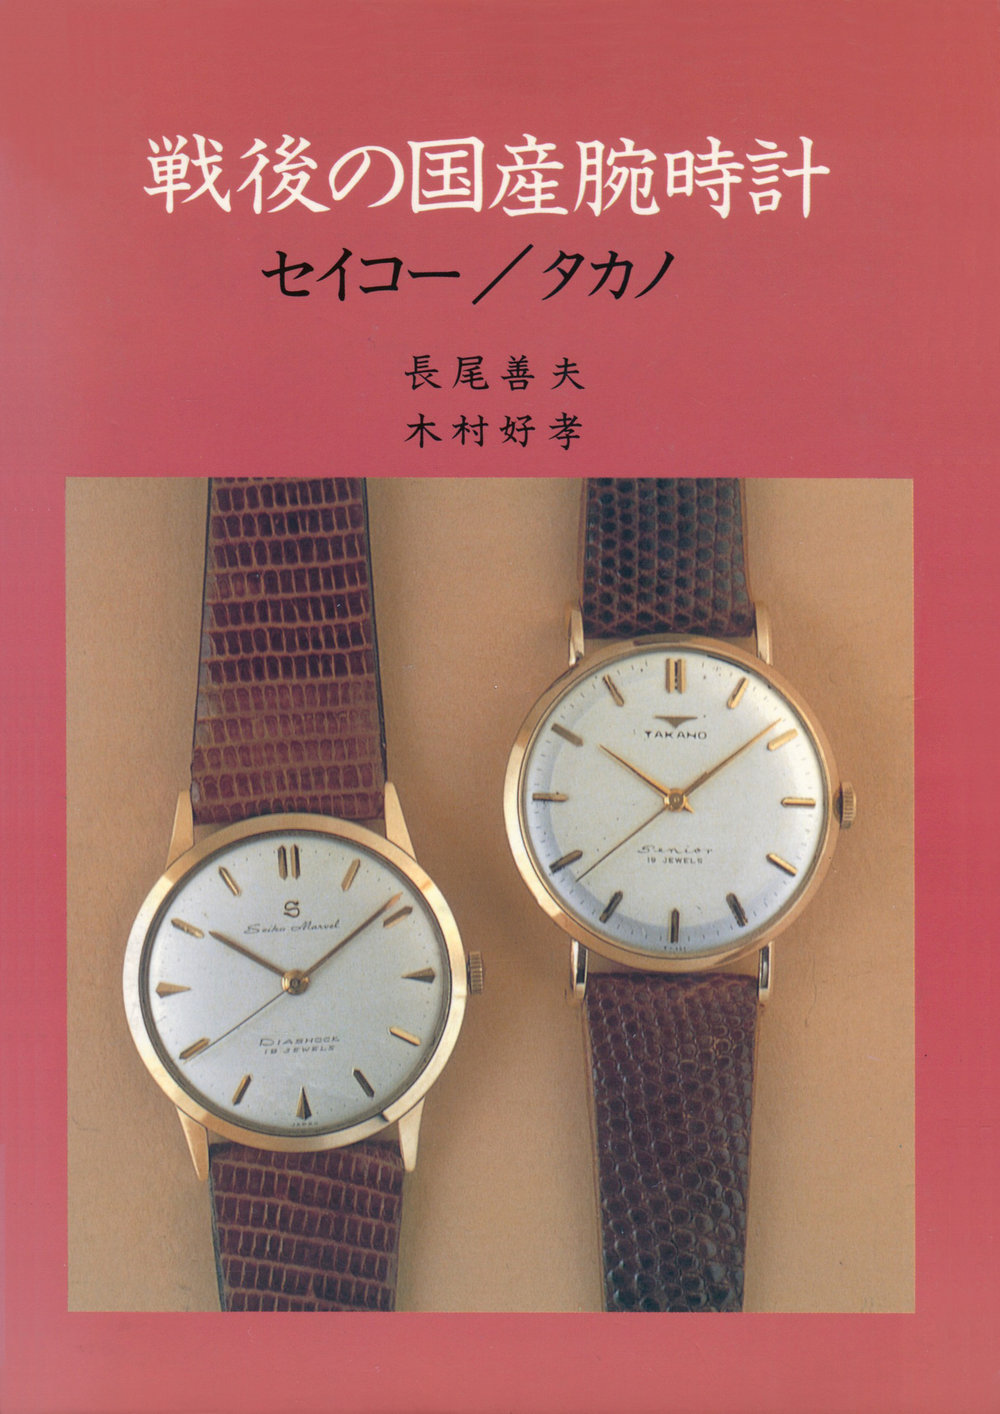 Cover - Postwar Domestic Watch - Seiko / Takano